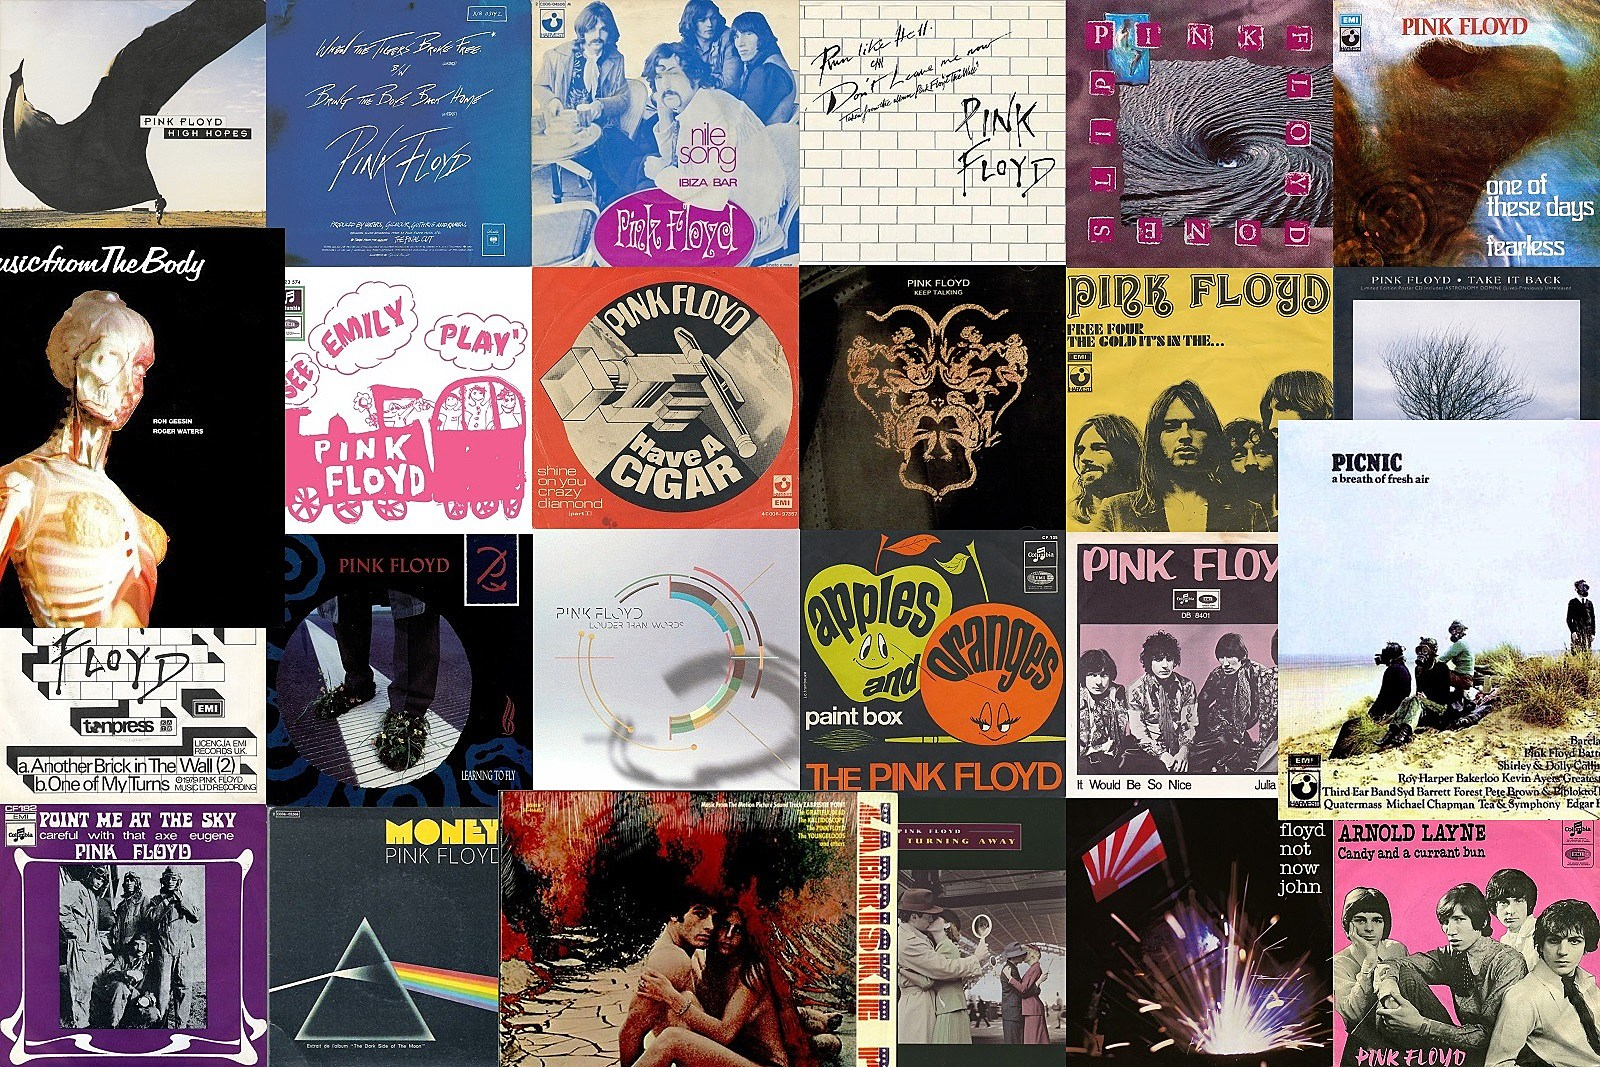 6c4f0aa4edf All 167 Pink Floyd Songs Ranked Worst to Best